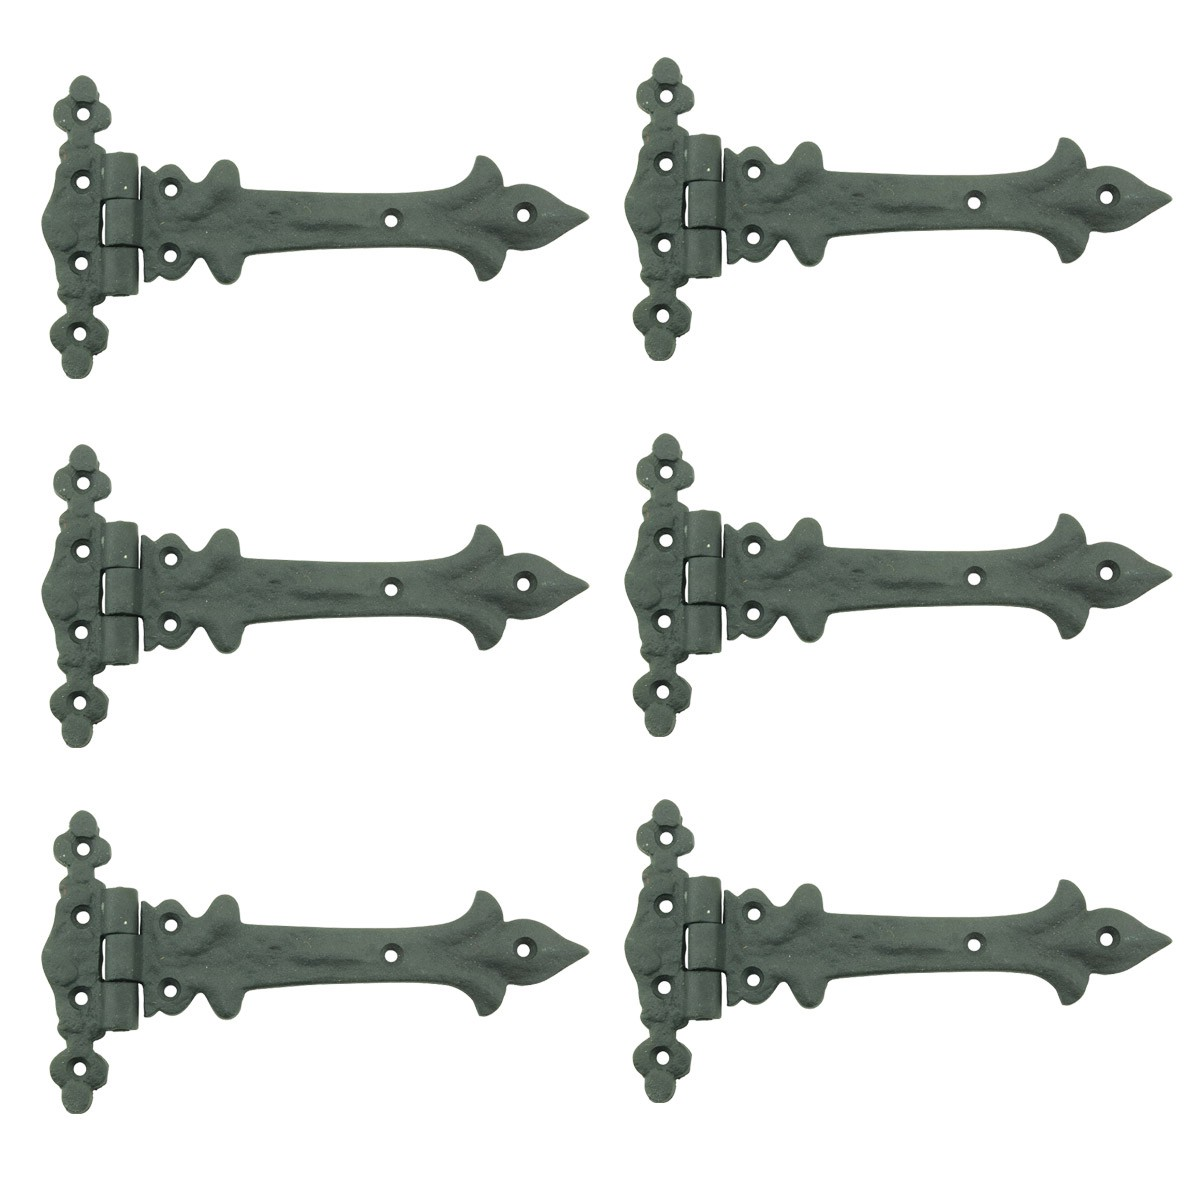 7 Inch Wrought Iron Strap Hinge Southern Charm RSF Resistant Barn Pack of 6